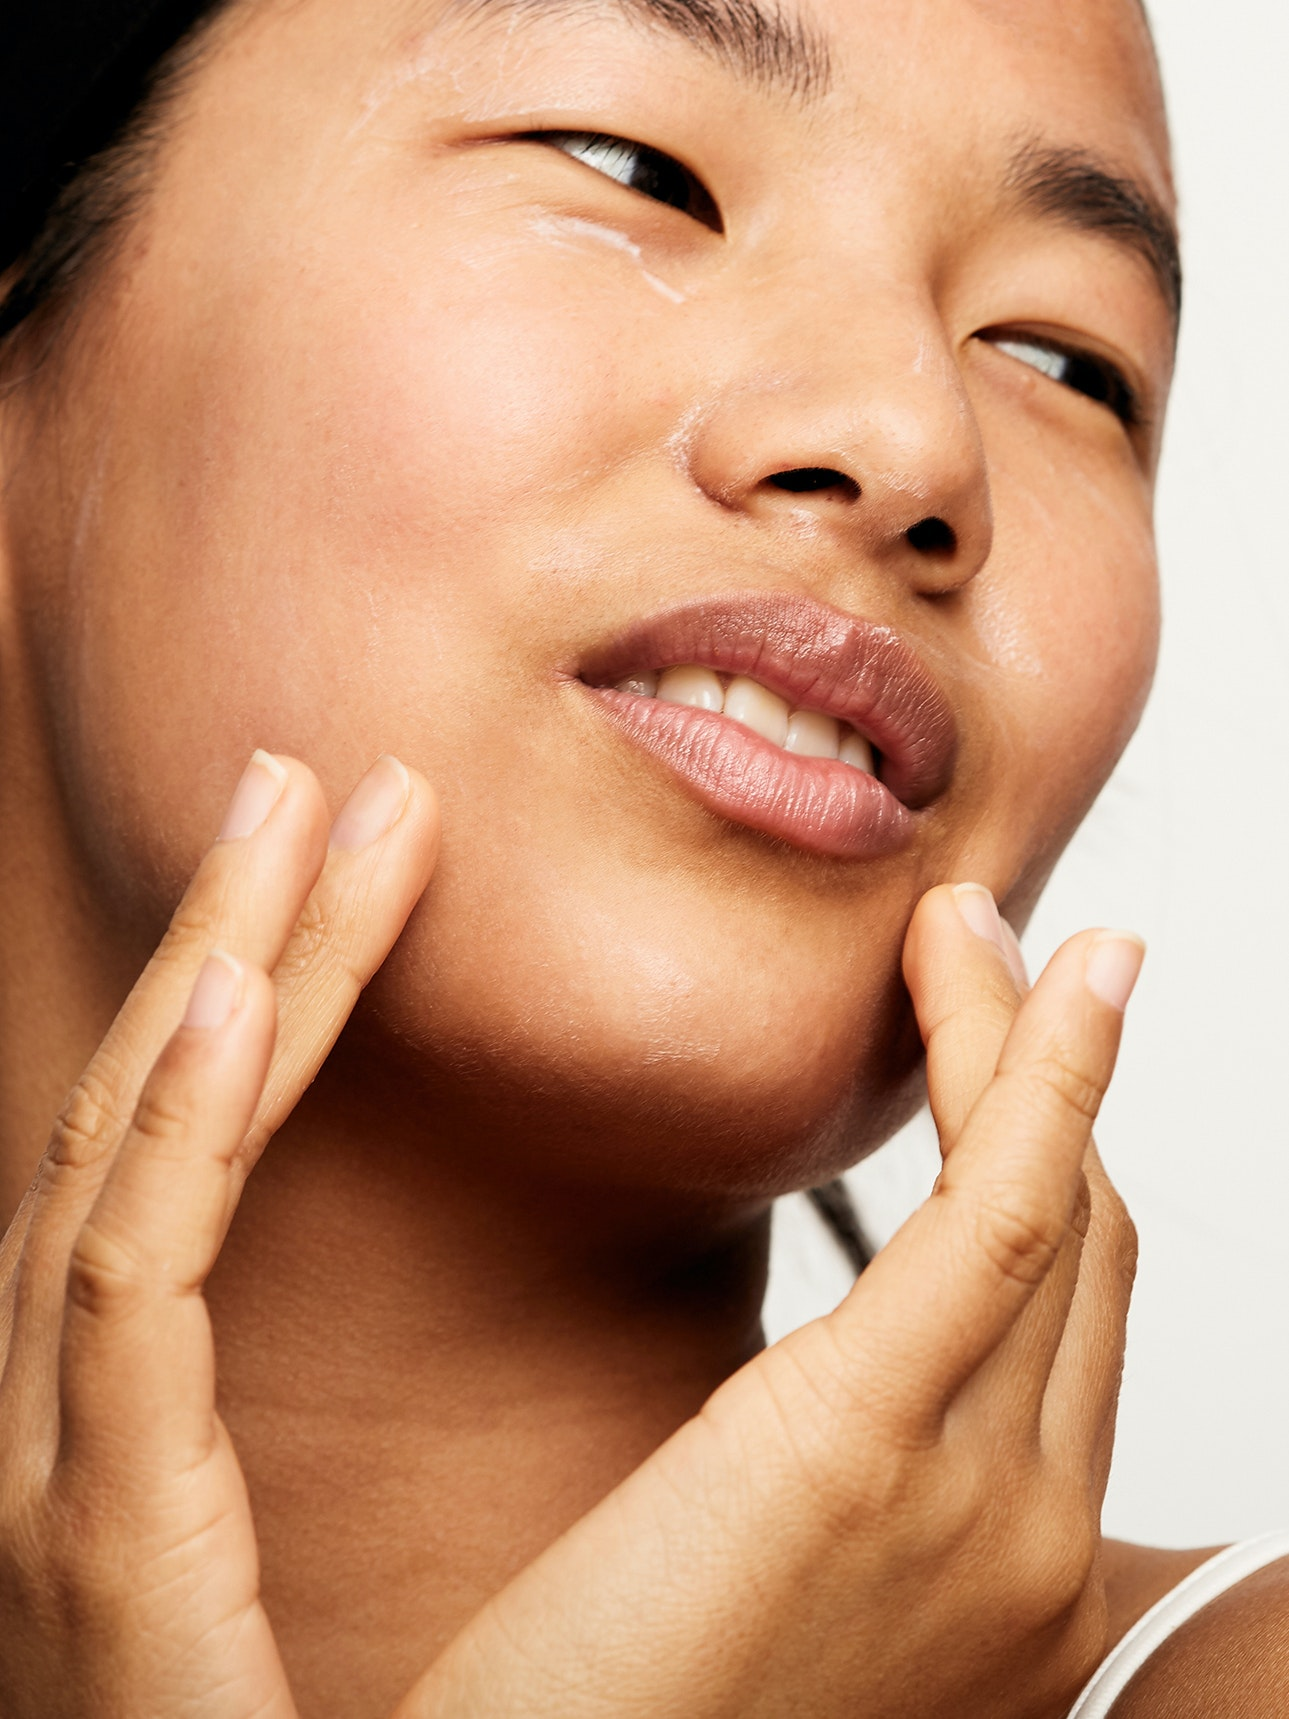 woman touching face skincare